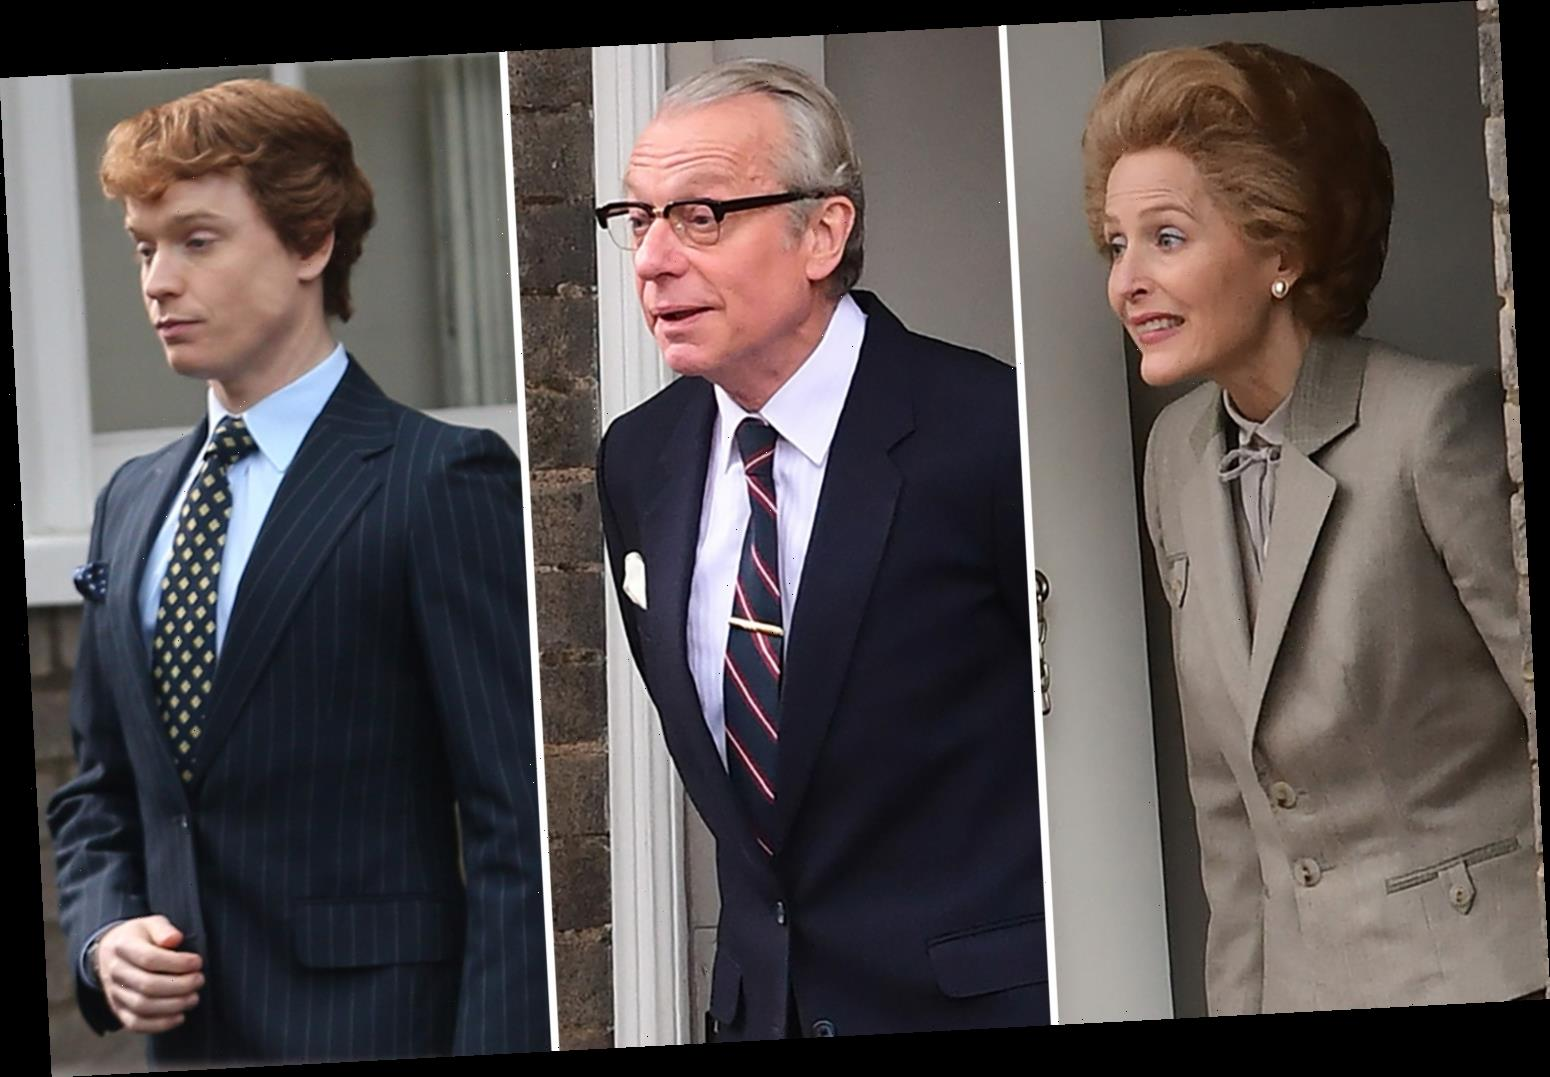 The Crown offers first look at Margaret Thatcher's family as Gillian Anderson films scene with husband and son